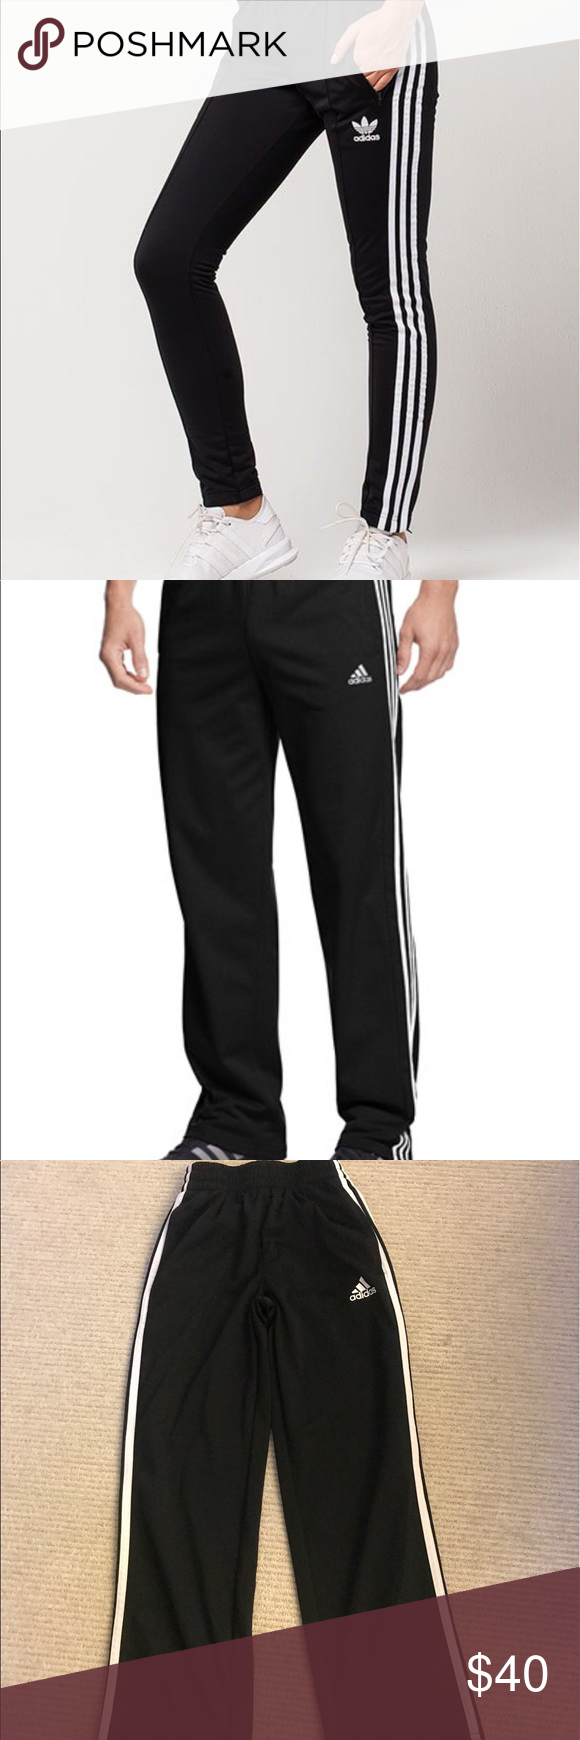 Authentic Adidas track pants Authentic Adidas track pants perfect for both genders. Never worn Adidas Pants Track Pants & Joggers